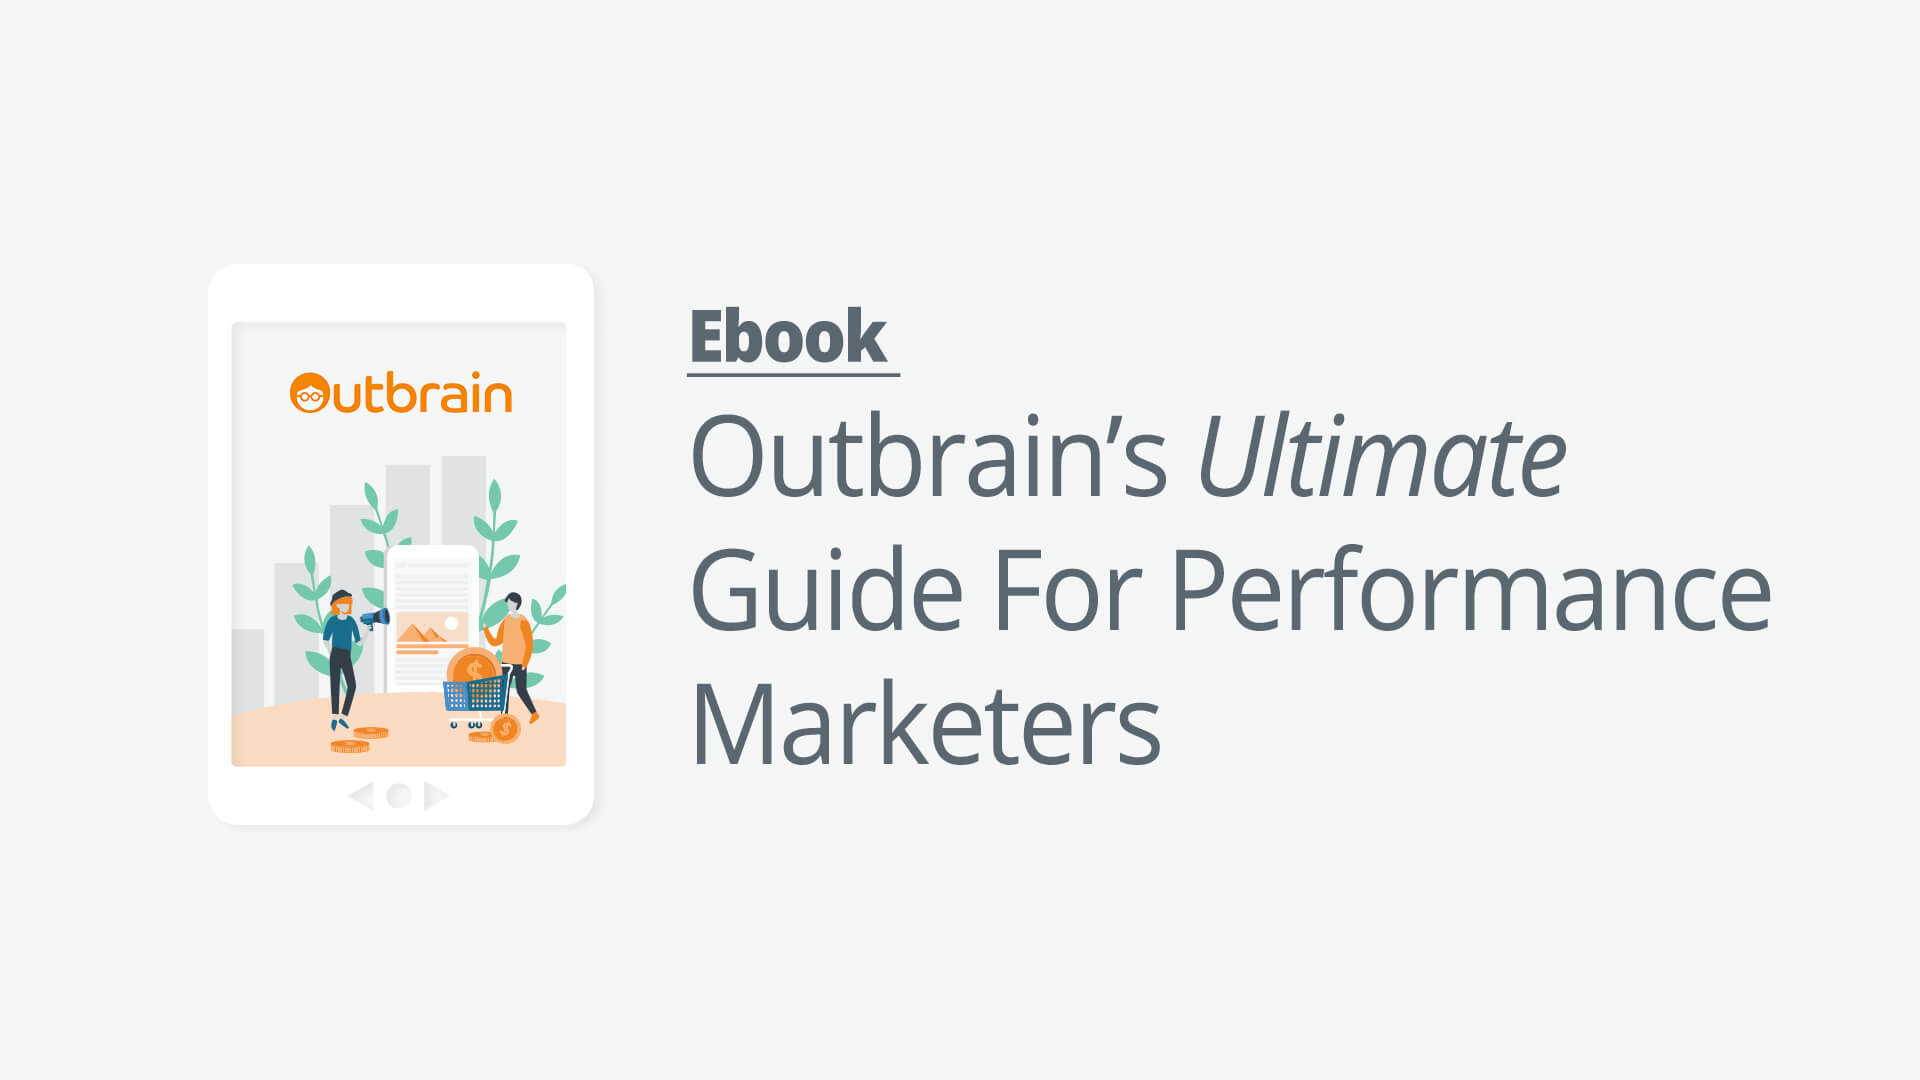 Introducing: Outbrain's Ultimate Guide For Performance Marketers